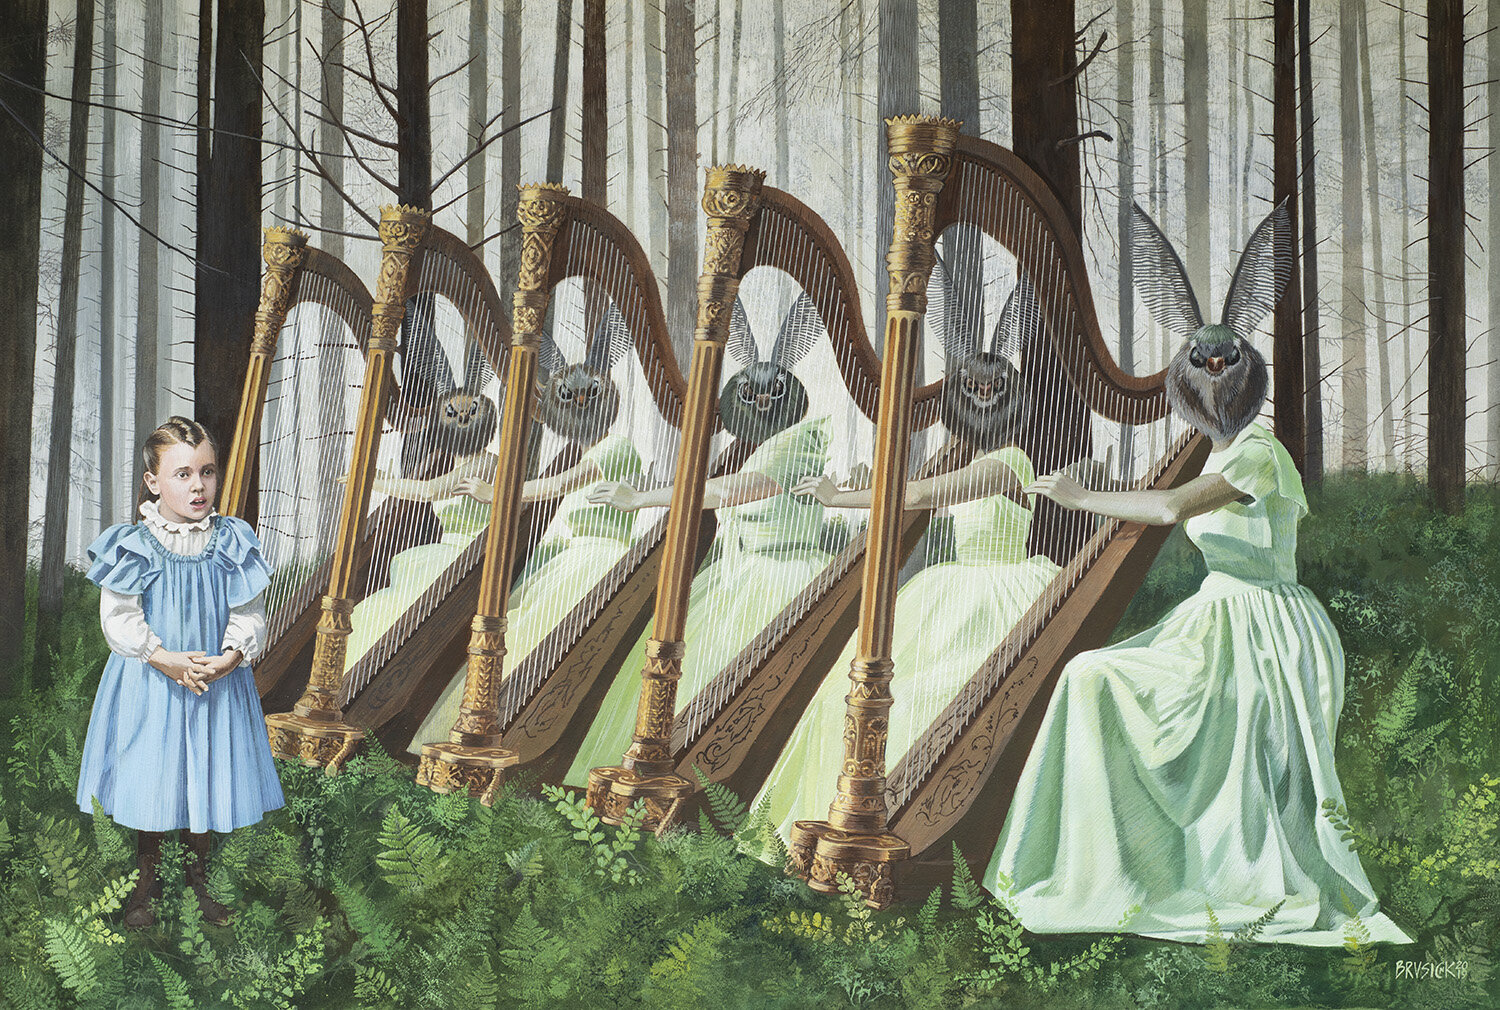 The Moth Harpists of Trinidad   2019, Gouache on Arches Paper, 32 x 40 inches